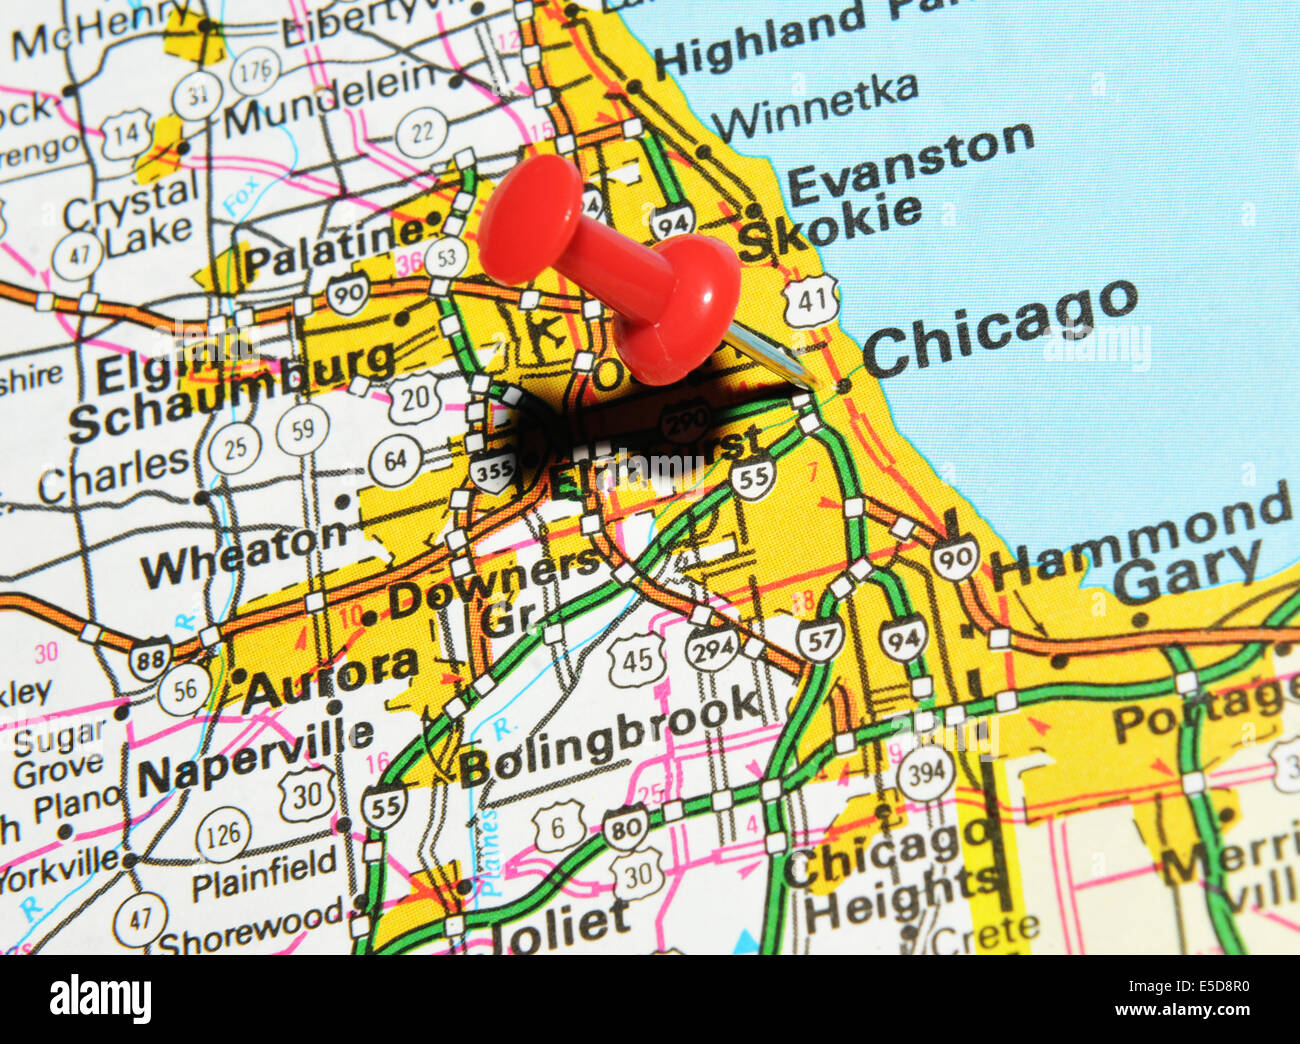 Chicago Location In Us Map.Chicago On Us Map Stock Photo 72207044 Alamy